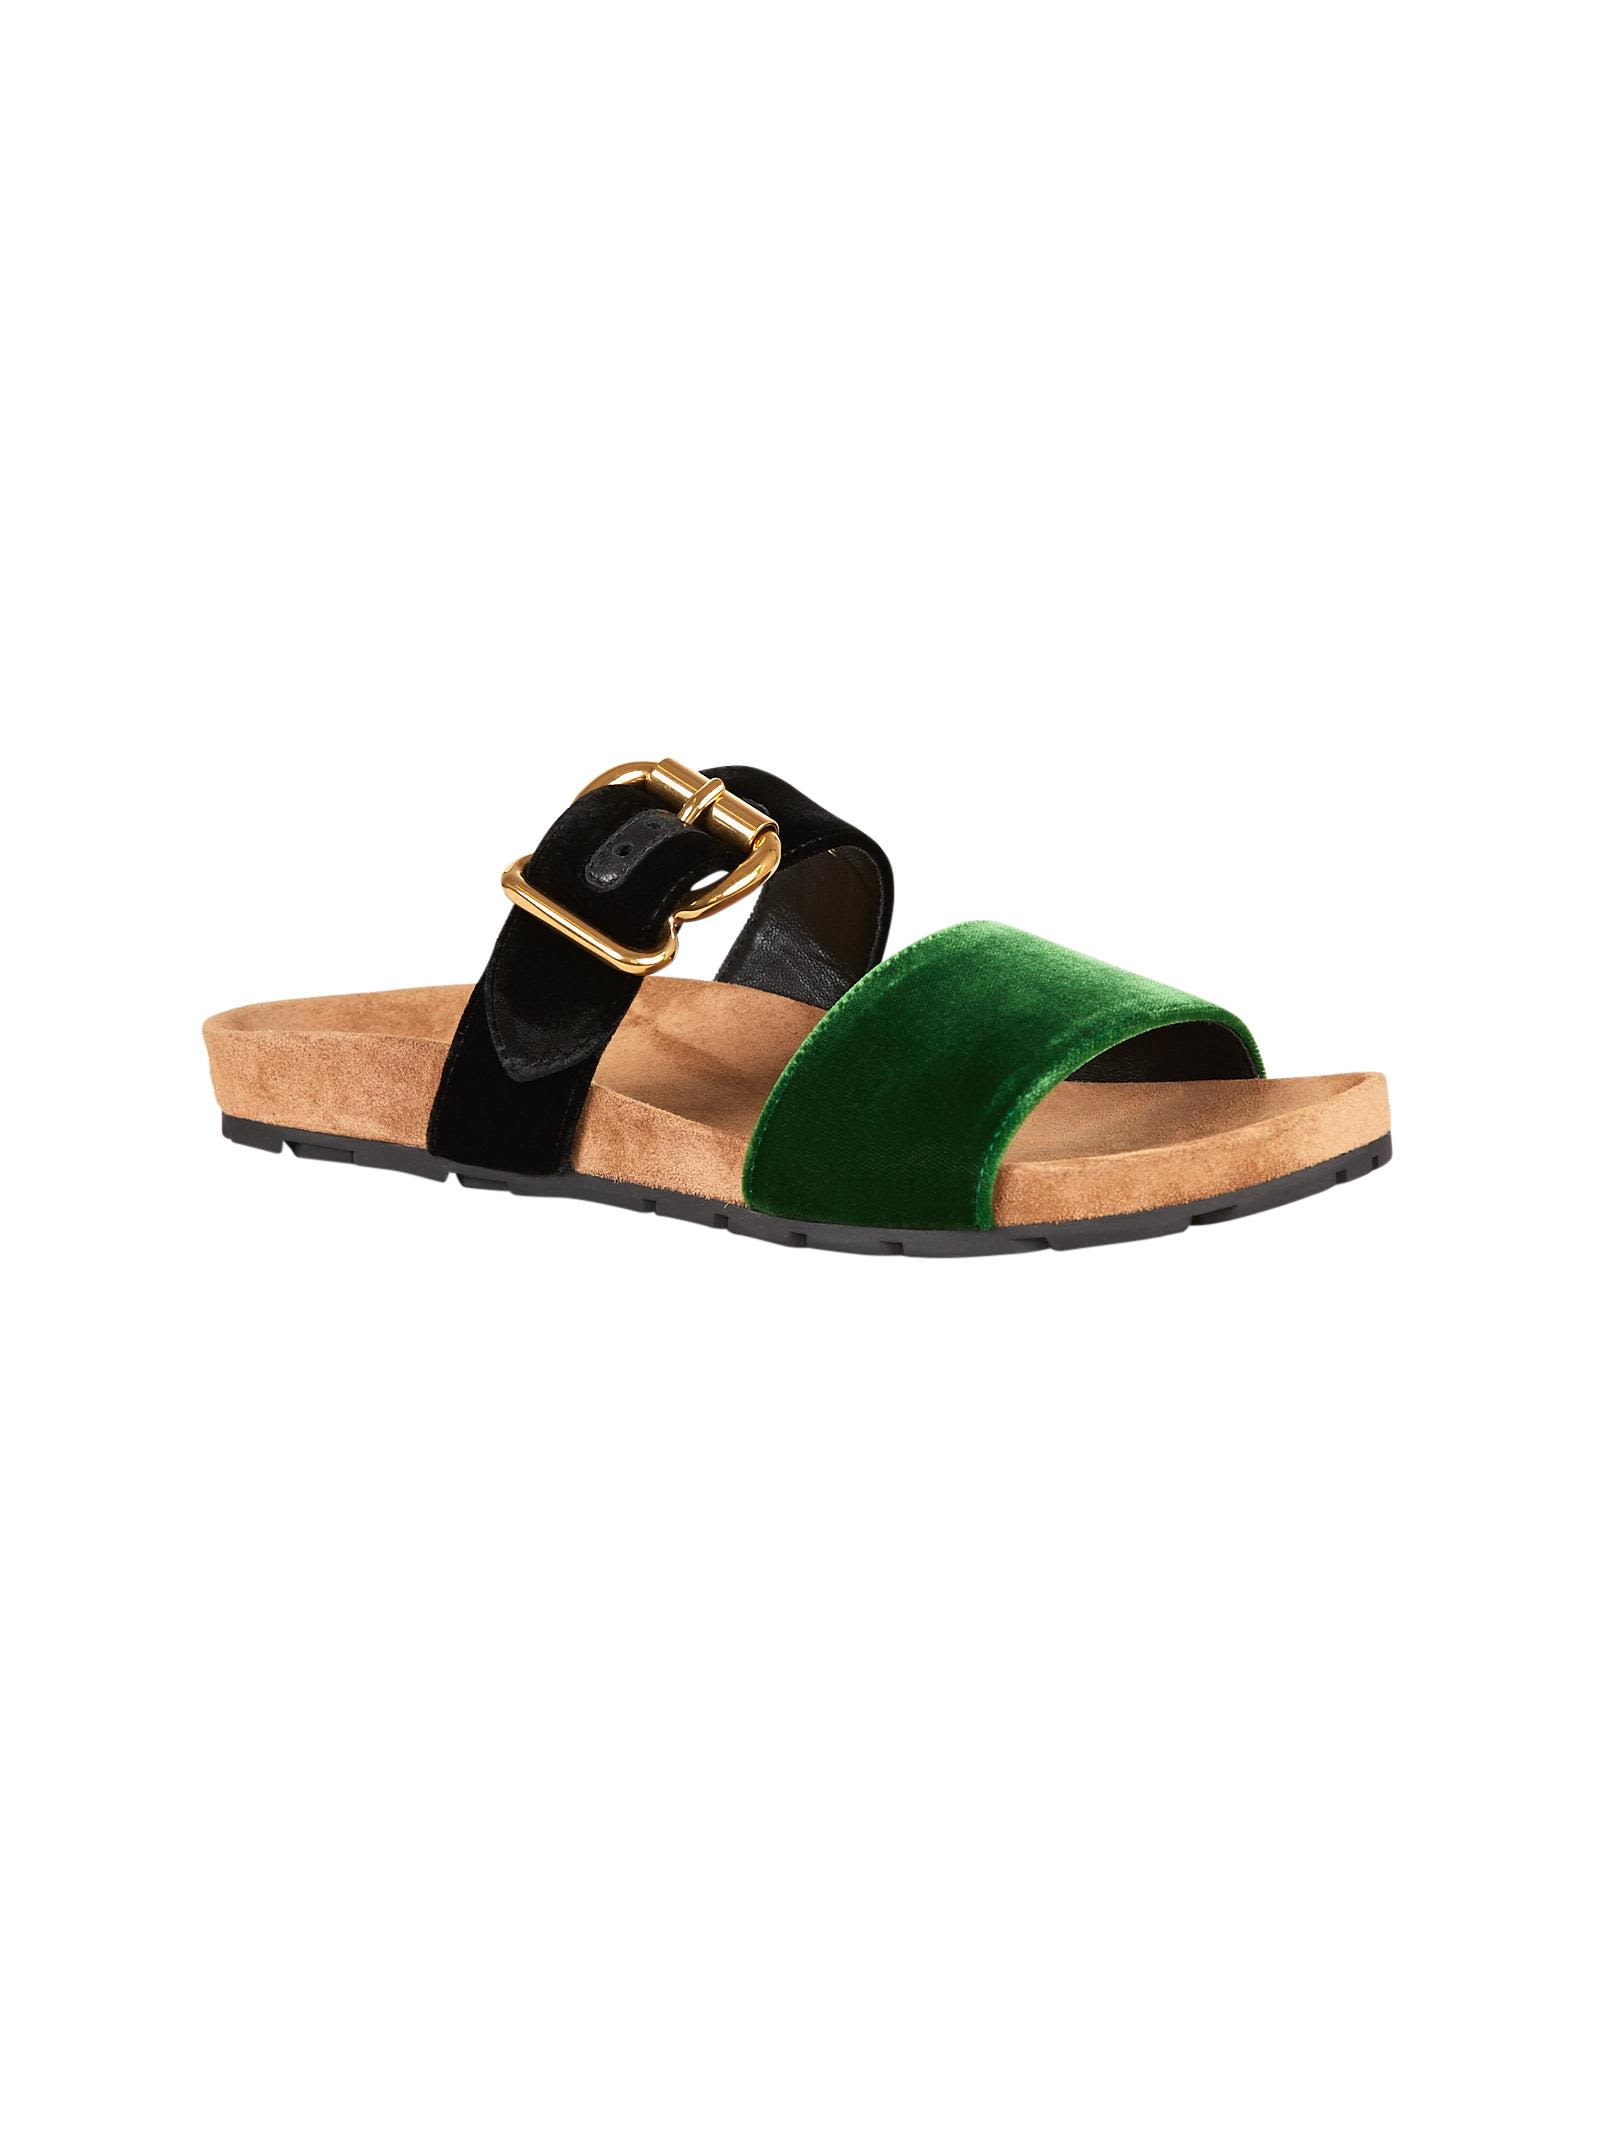 Prada Buckled Flat Sandals Footlocker Finishline Sale Websites Collections Cheap Price bEpwIPGEiL